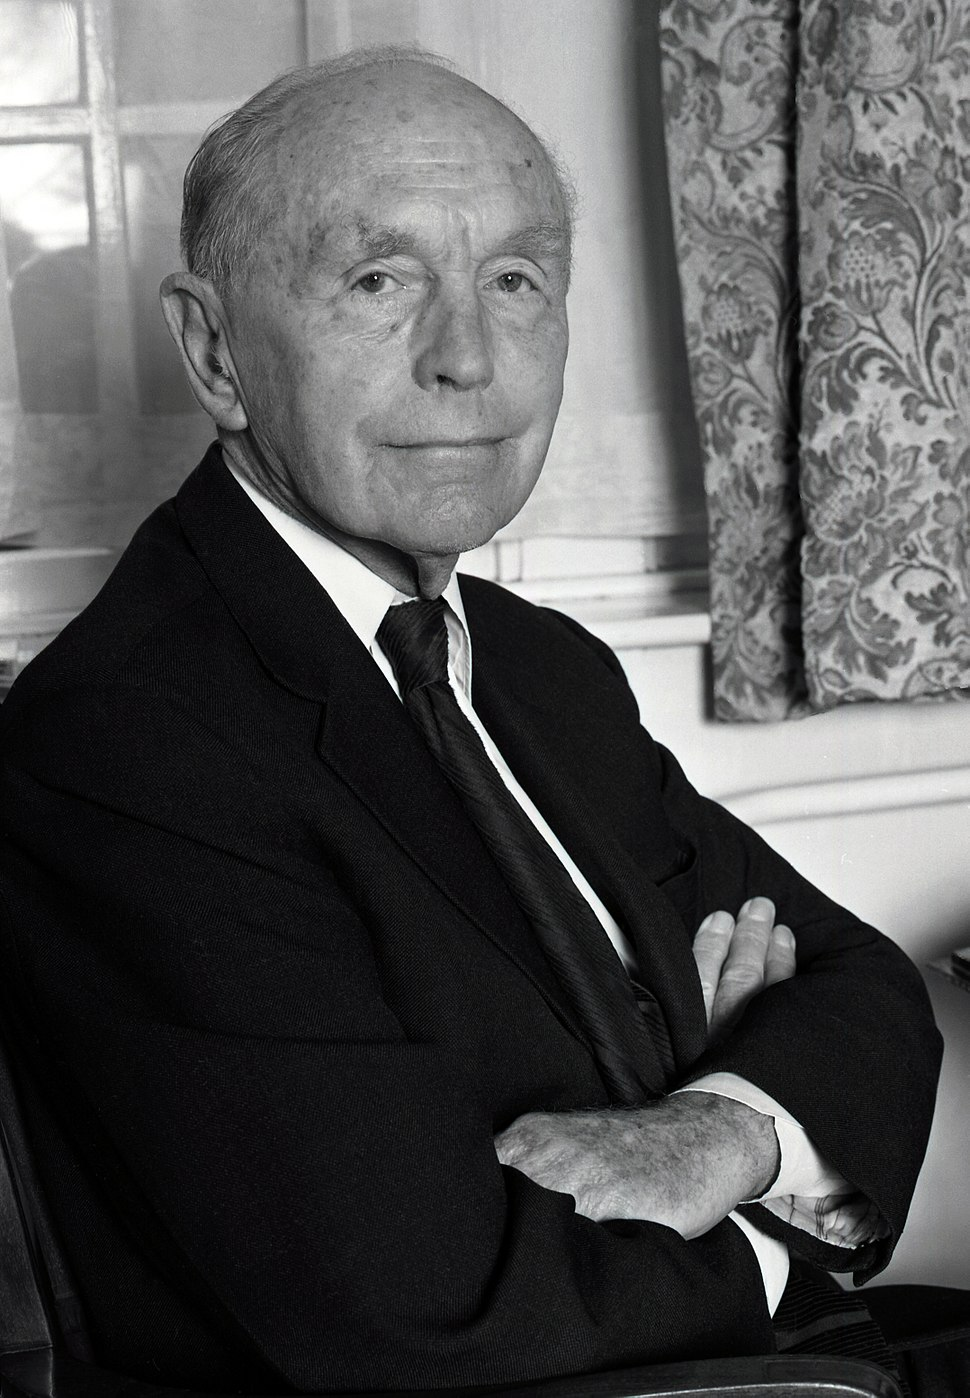 Sir Alec Douglas Home 4 Allan Warren